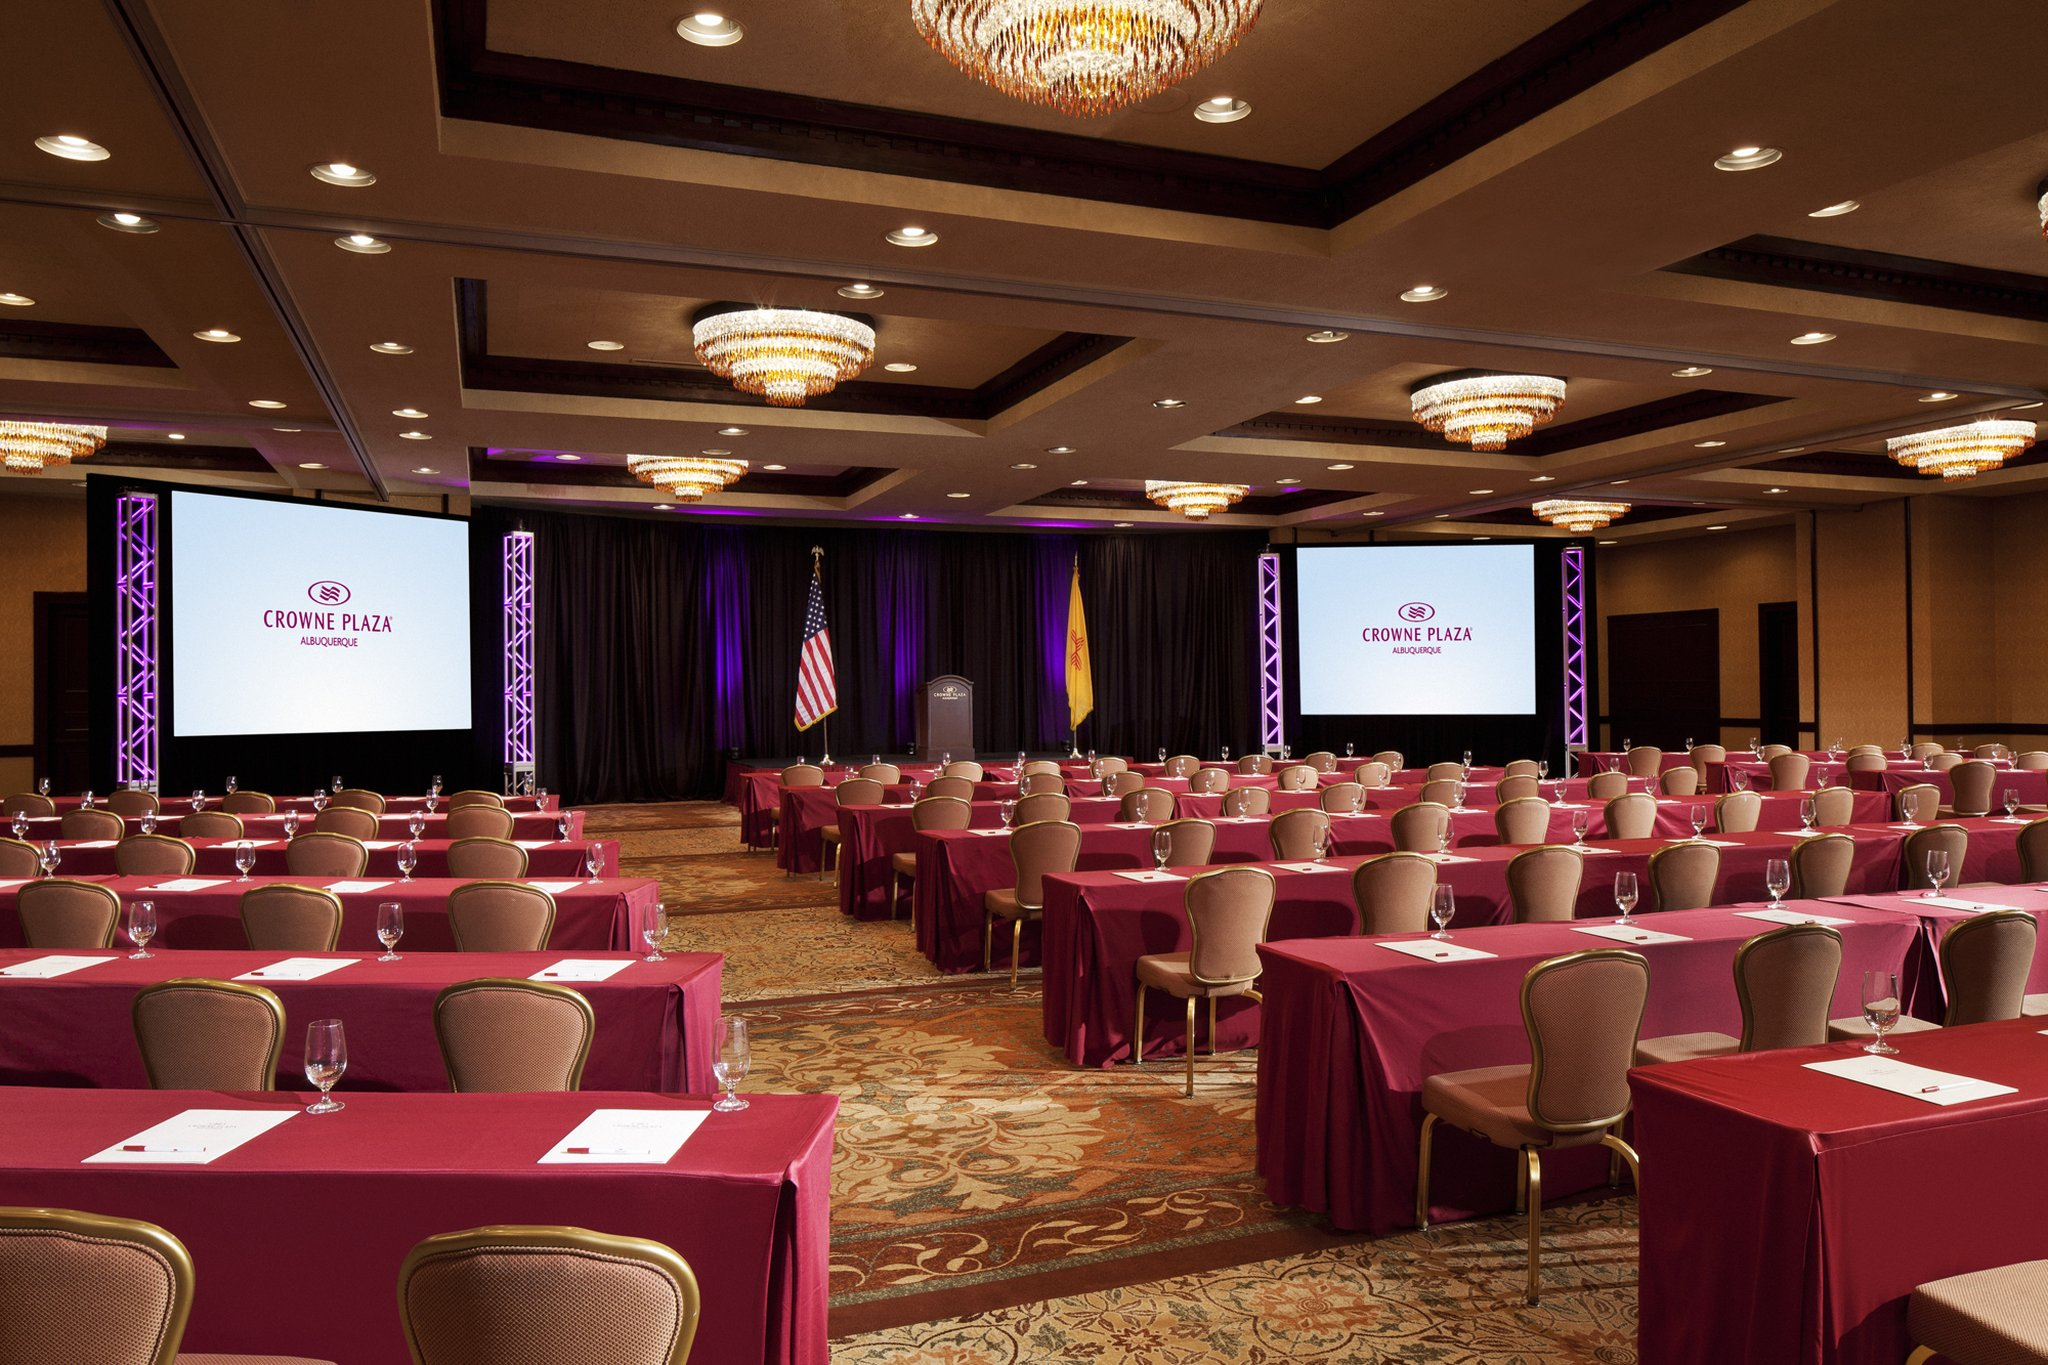 Meetings and Events at Crowne Plaza Albuquerque, Albuquerque, NM, US